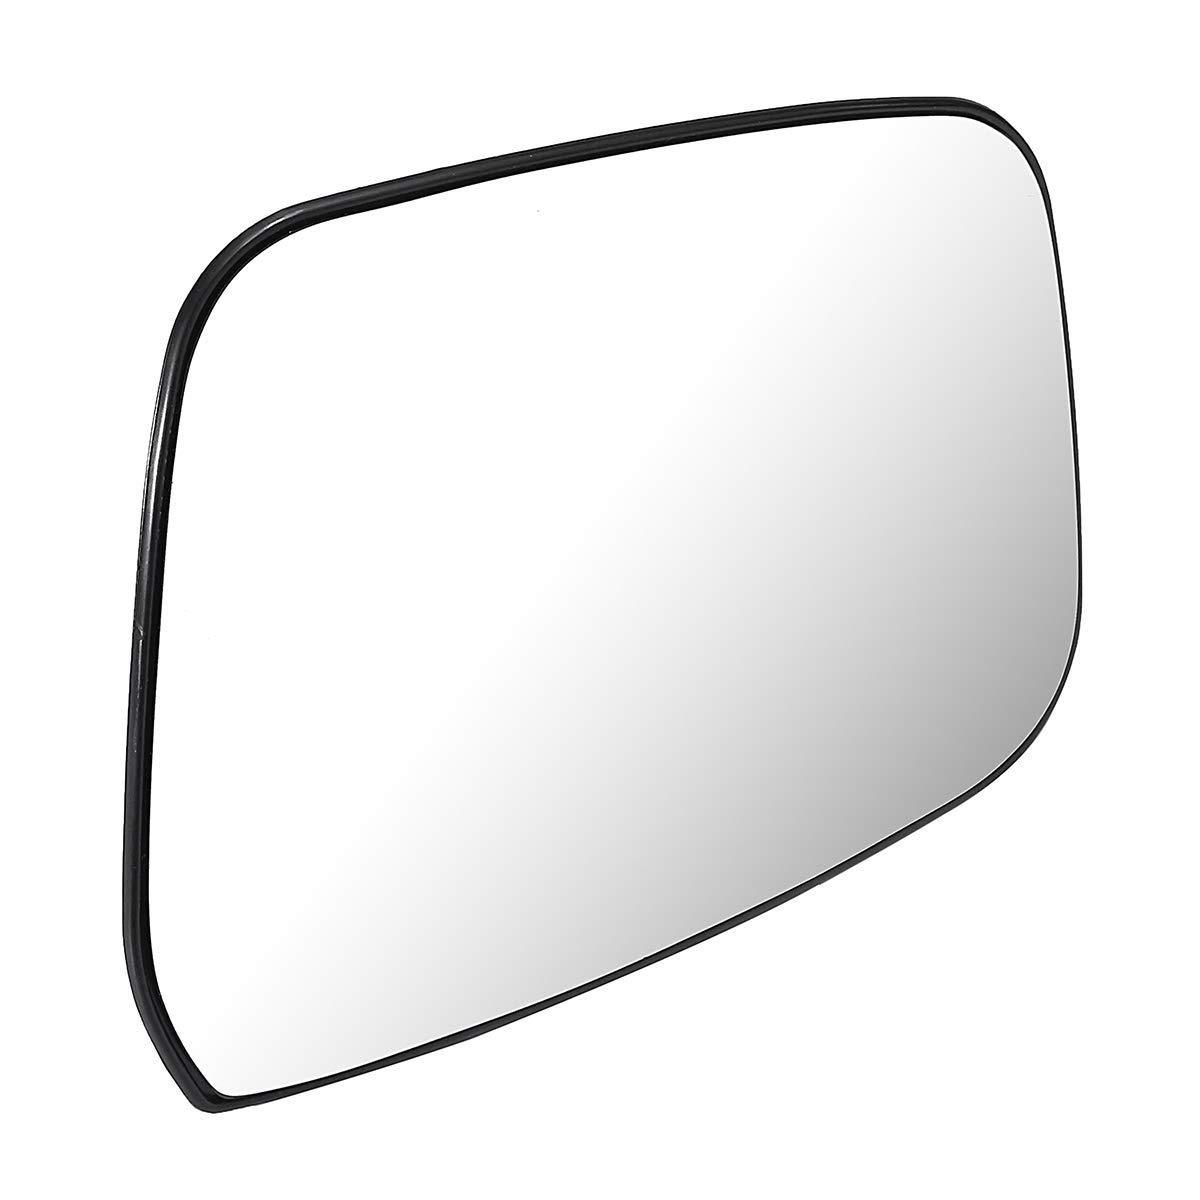 SODIAL 1Pair Left+Right Electric Wing Door Heated Mirror Glass For Navara D40 2005 2006 2007 2008 2009 2010 2011 2012 2013-2015